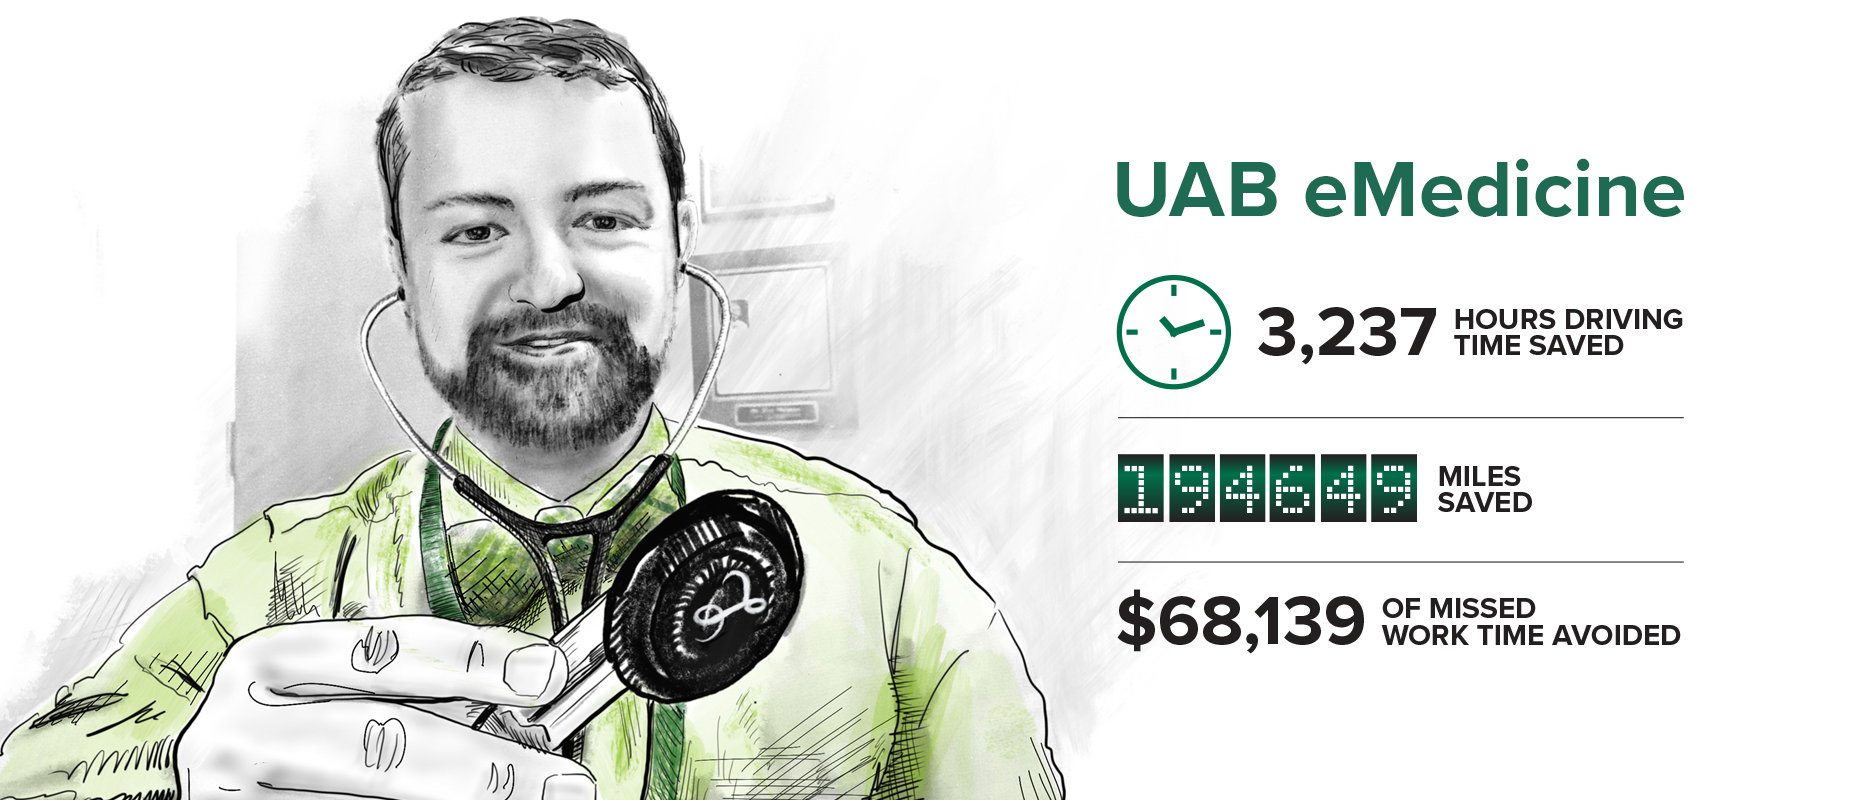 UAB eMedicine: How health tech is cutting miles and changing lives